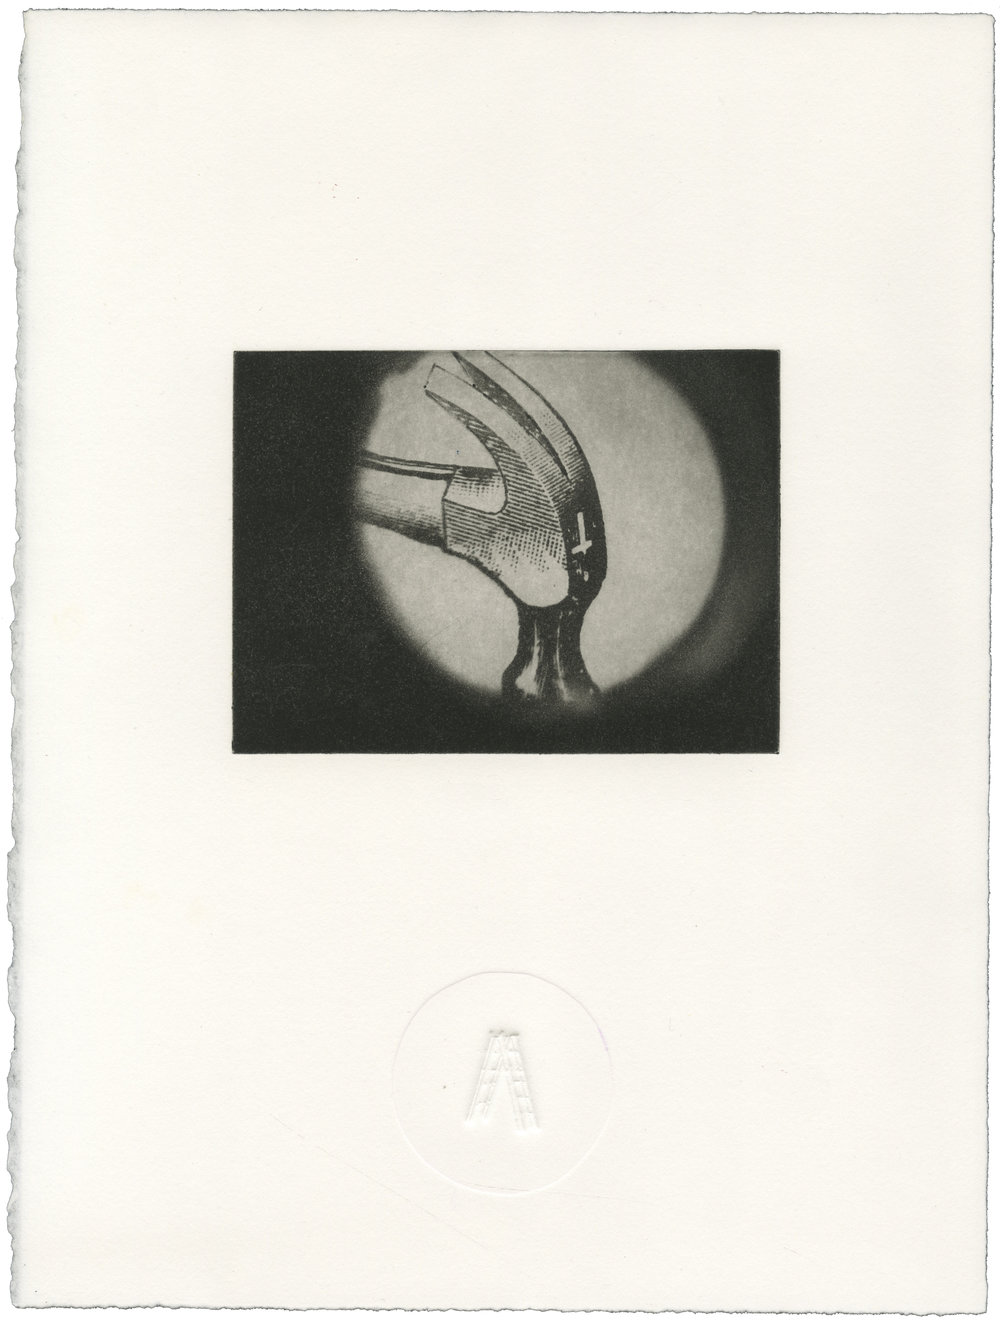 Author/Ladder , Polymer Intaglio with Blind Emboss, 11x14 inches, 2014